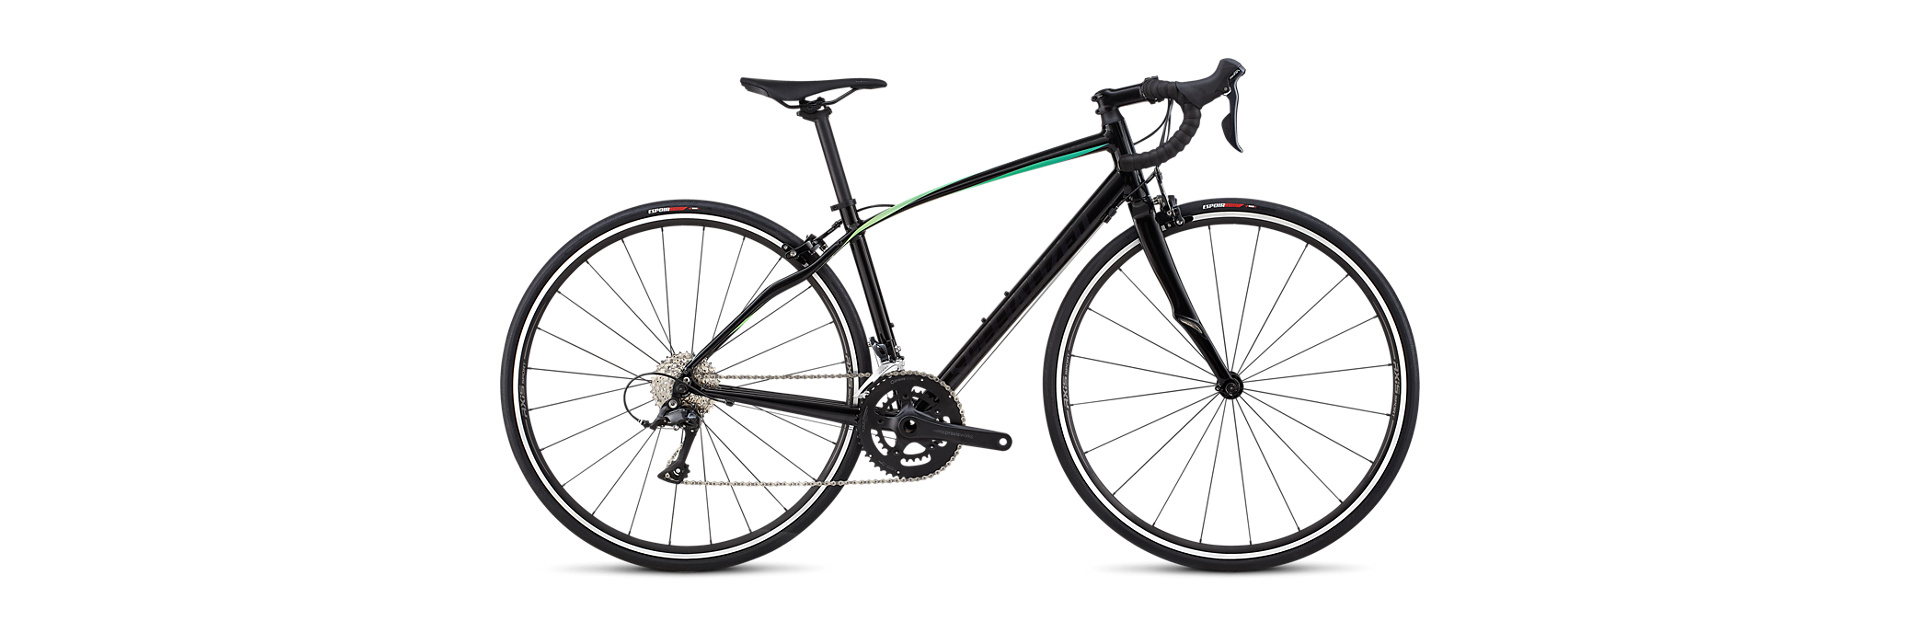 Specialized 18 DOLCE SPORT - Gloss / Satin / Tarmac Black / Cali Fade 48